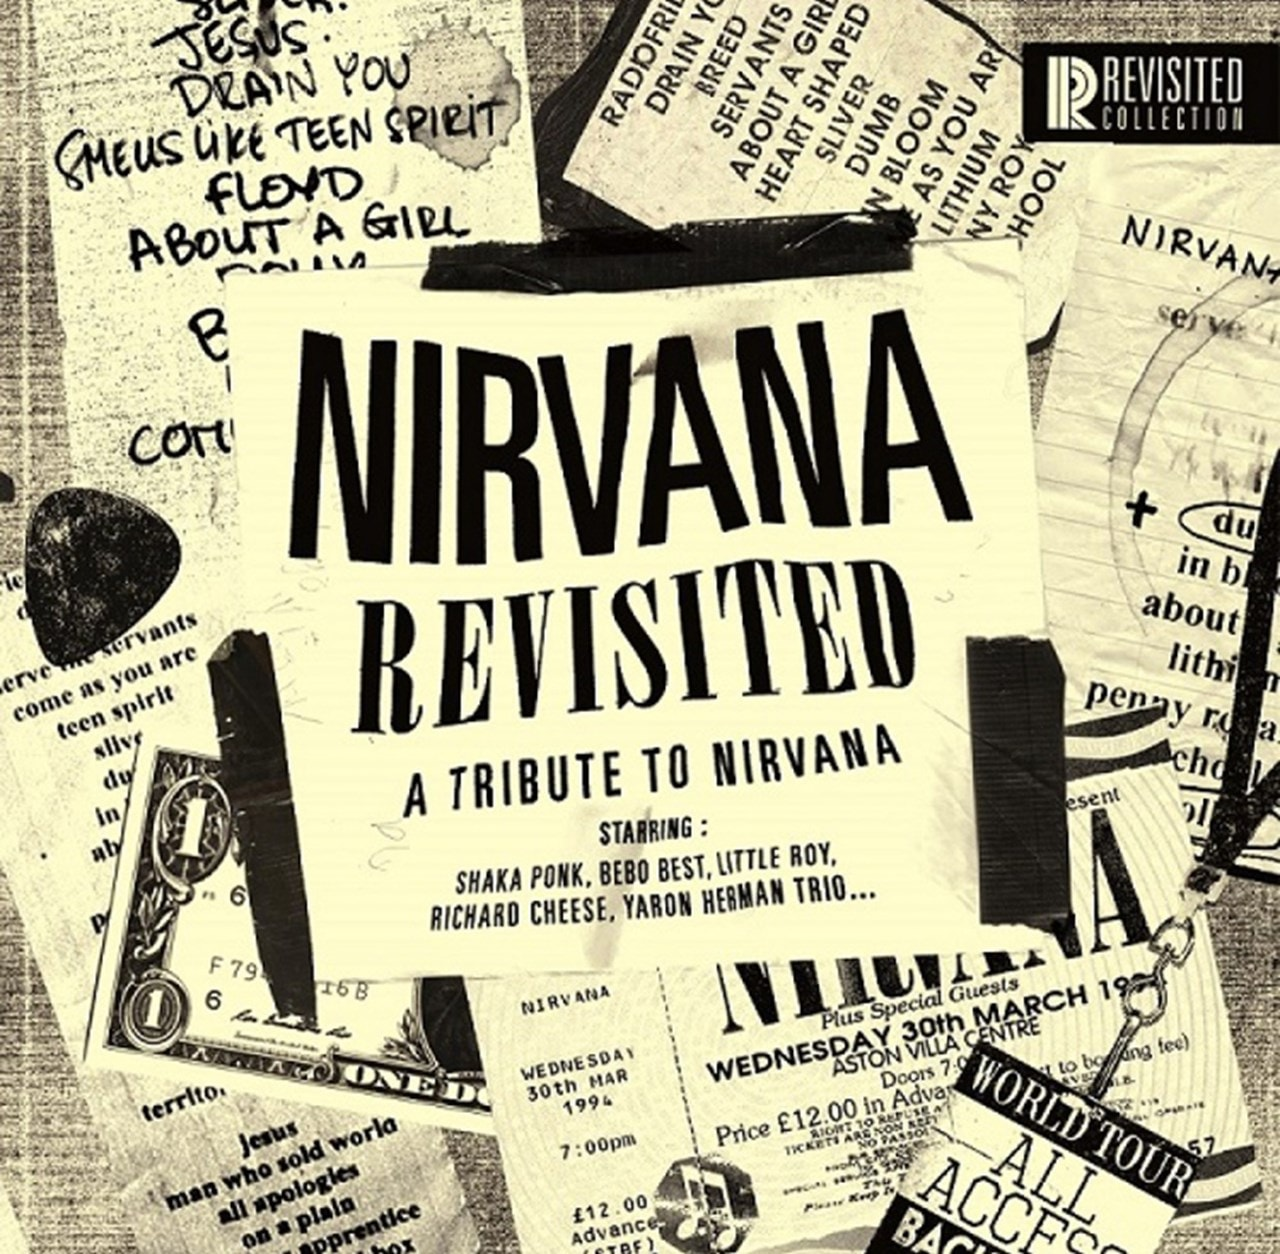 Nirvana Revisited: A Tribute to Nirvana - 1